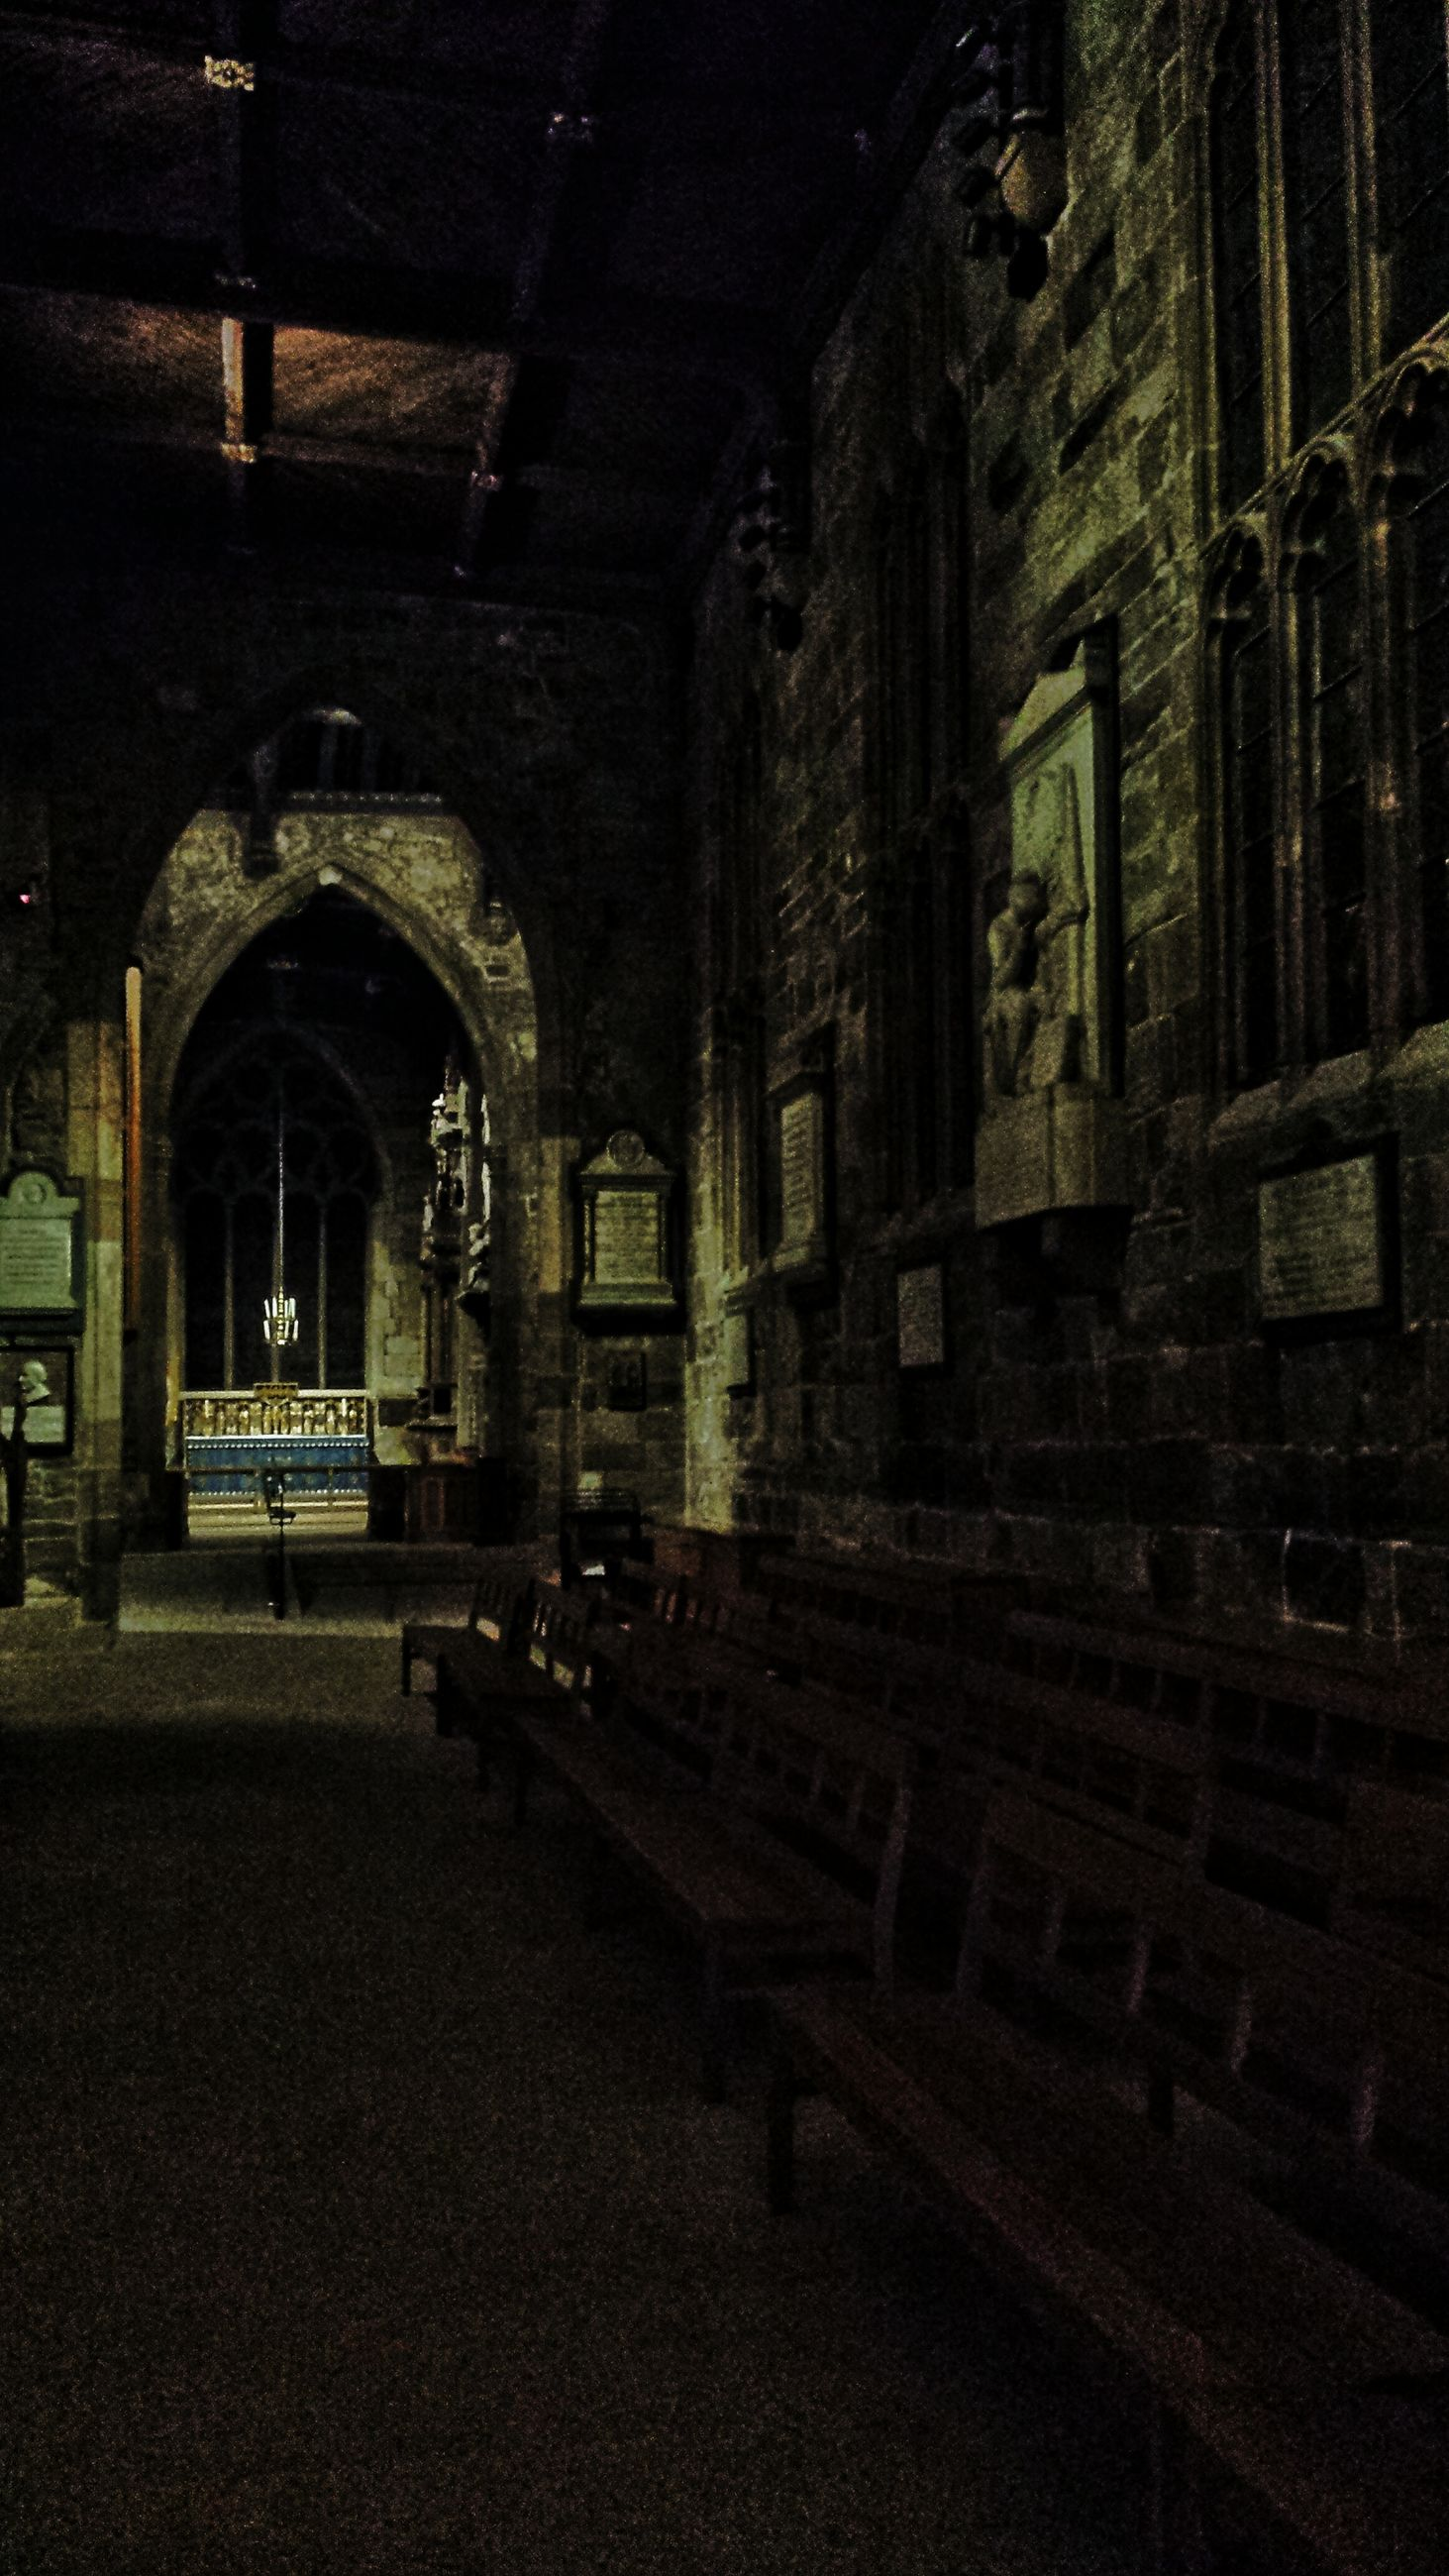 architecture, built structure, indoors, arch, old, night, dark, building exterior, window, illuminated, empty, the way forward, interior, abandoned, building, history, no people, house, absence